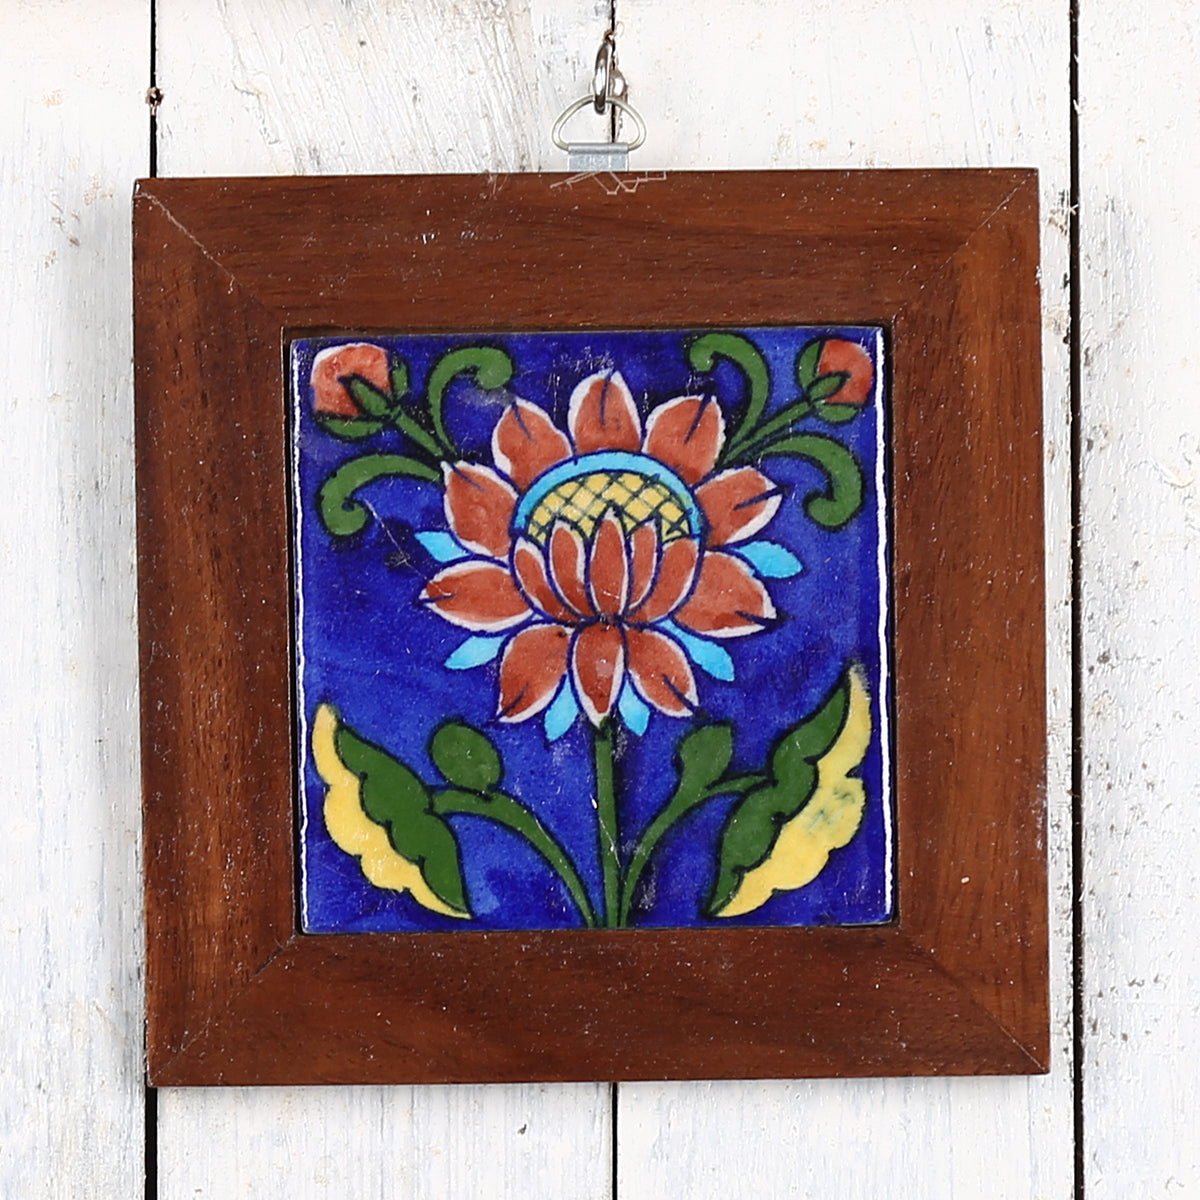 Jaipur Blue Pottery Wall Hanging 4